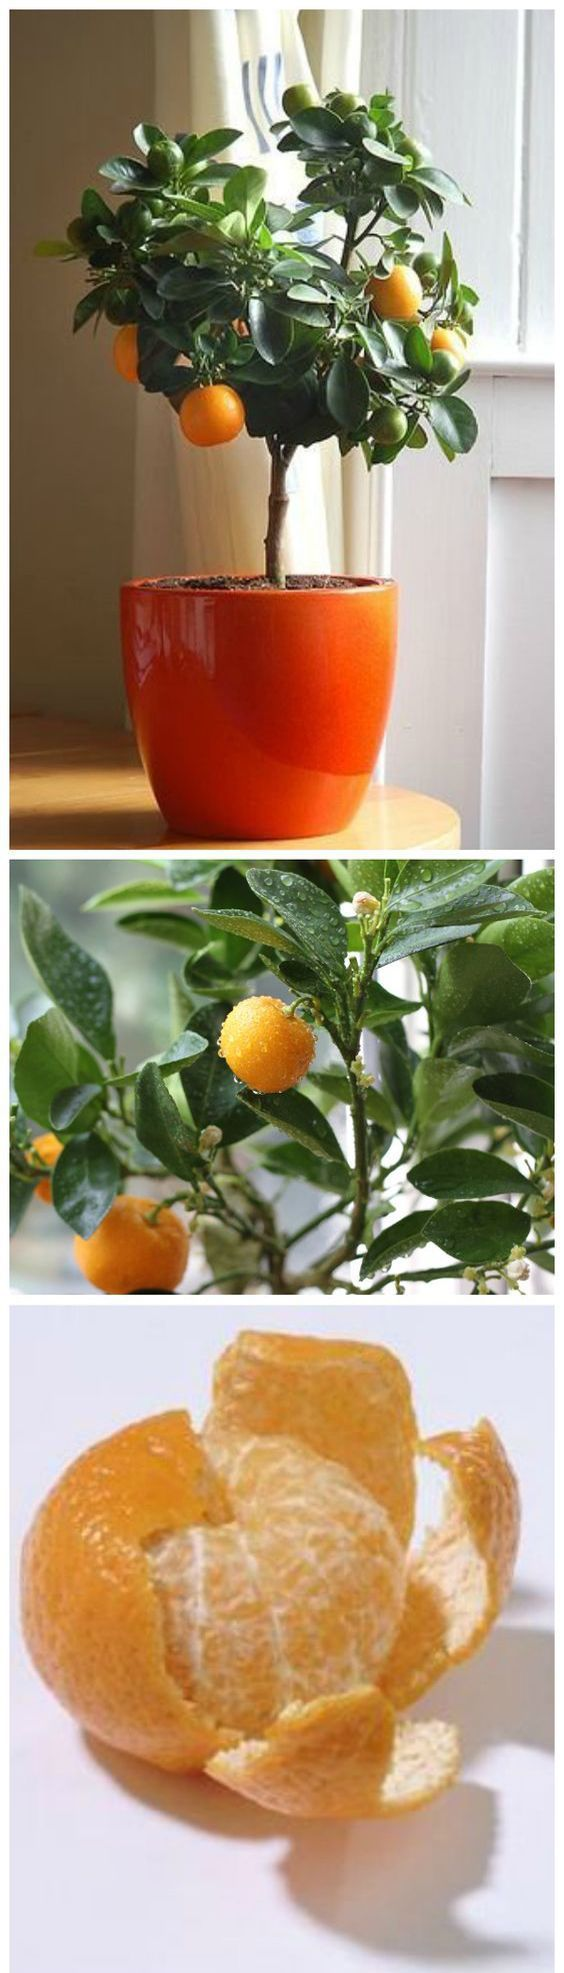 How to Grow Clementines From Seeds Clementines are a sweet, small citrus fruit that are often confused as tangerines